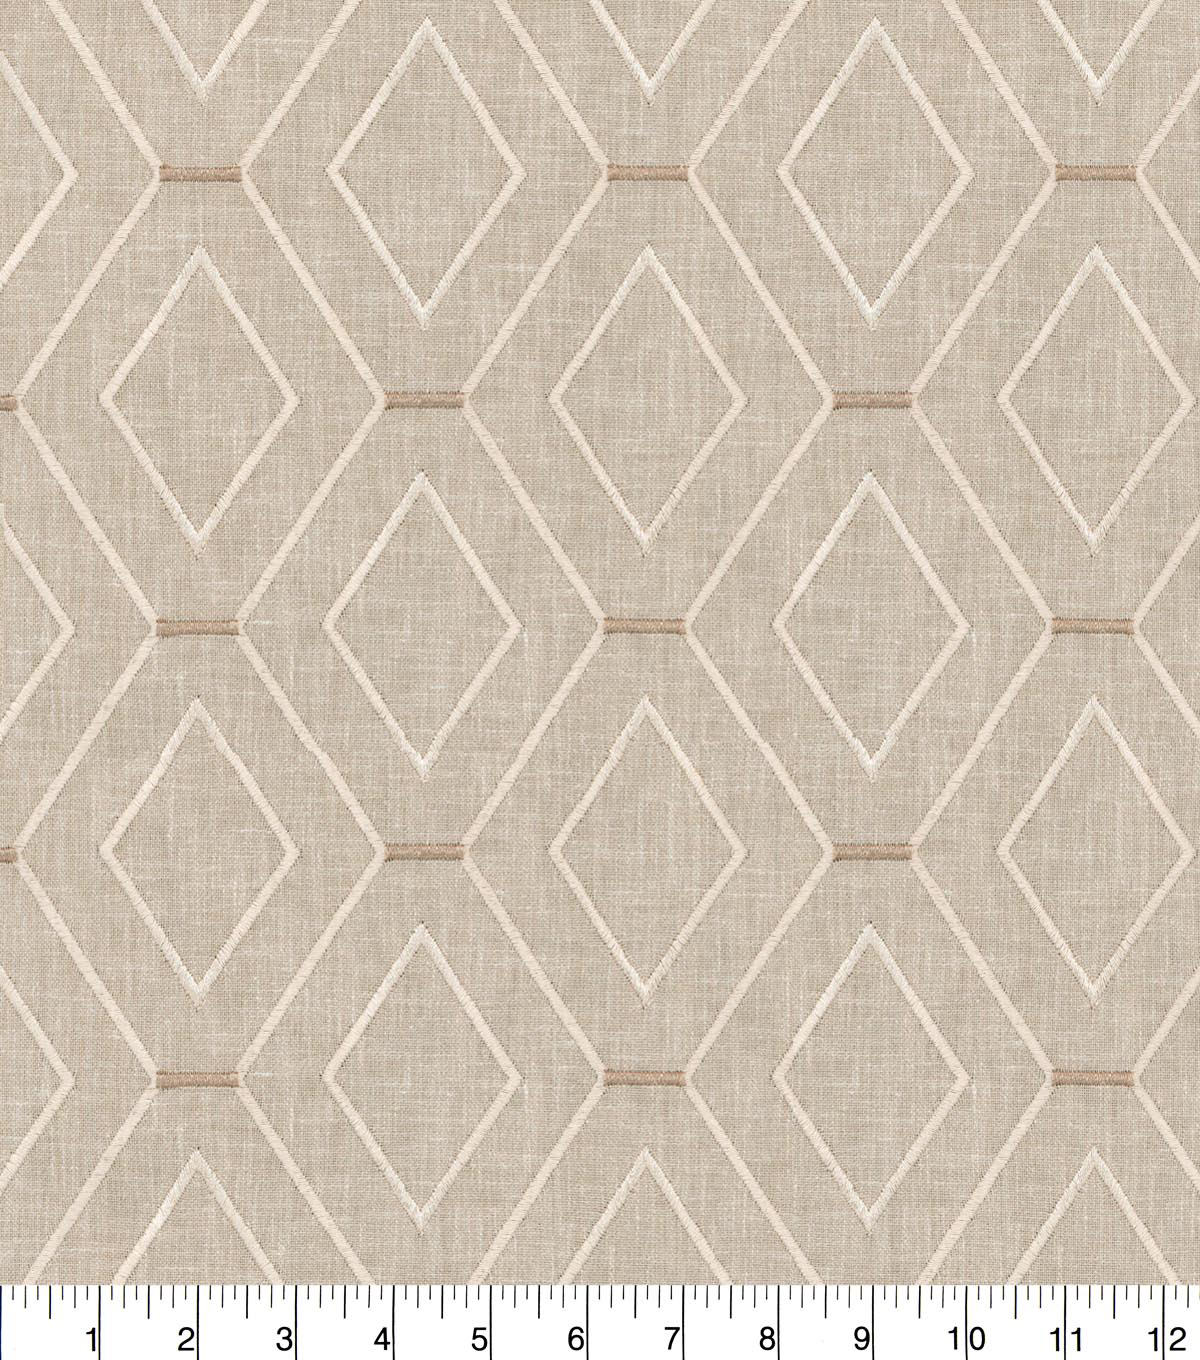 Waverly Upholstery Fabric 54''-Linen Diamond Duo